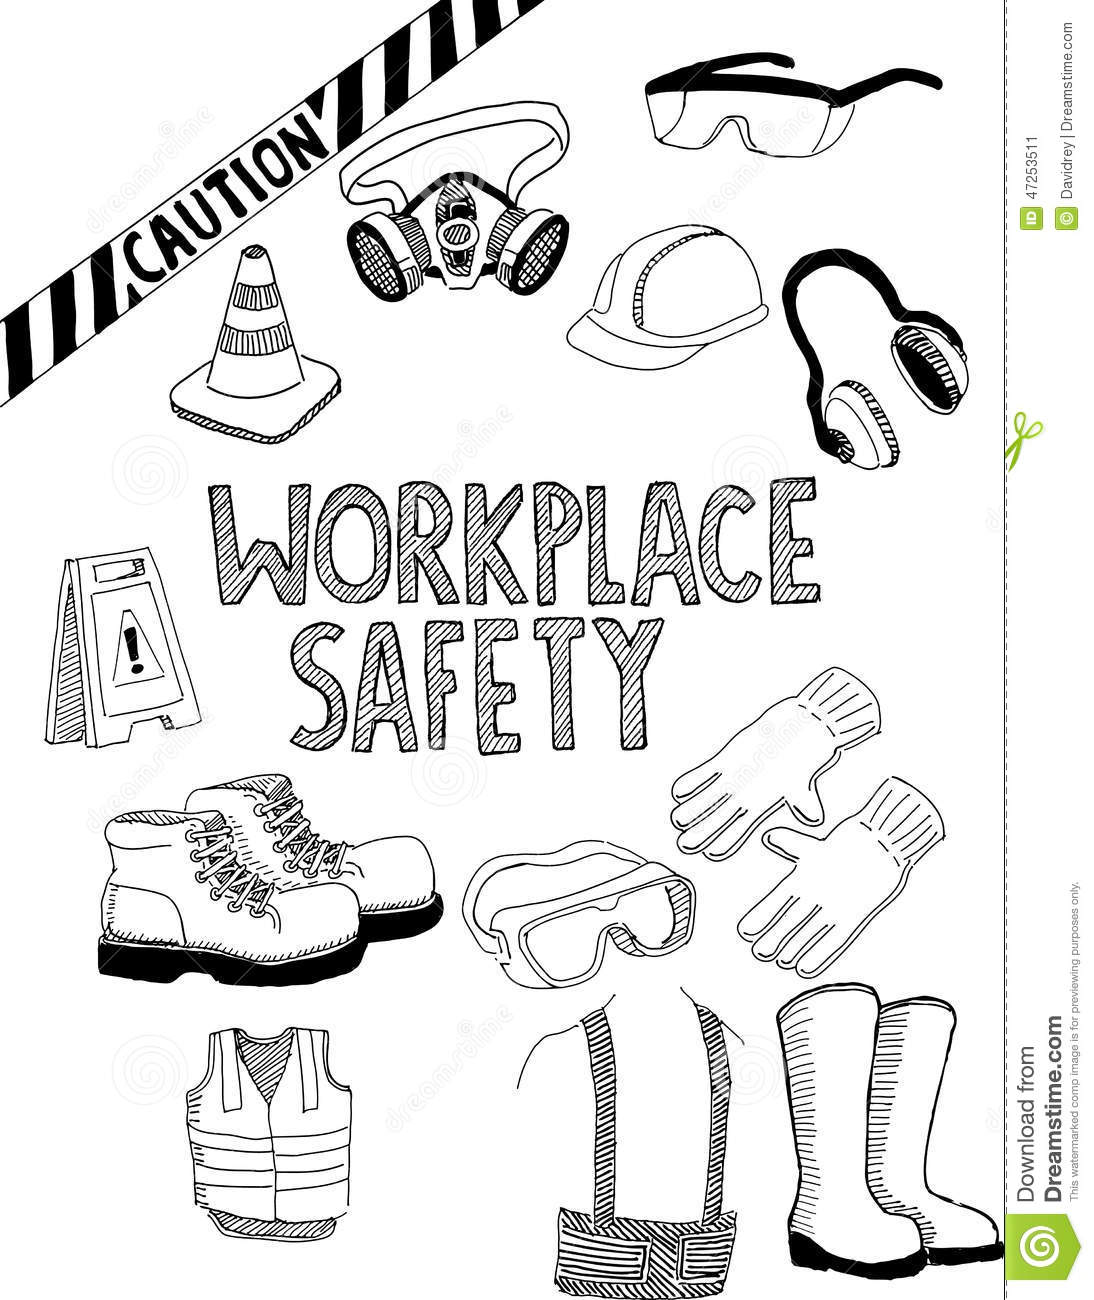 safety coloring contest pages - photo#11